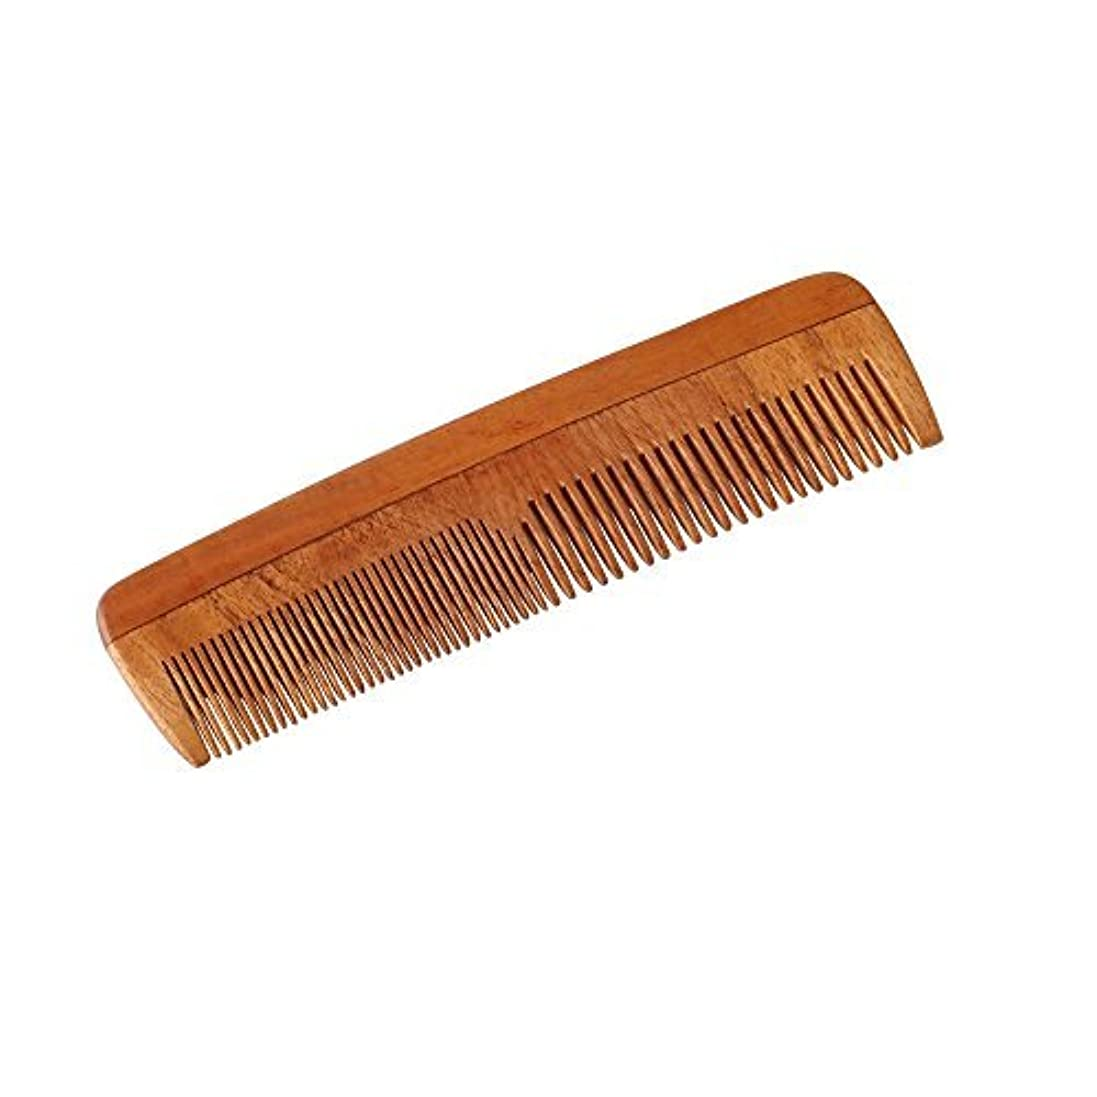 HealthAndYoga(TM) Handcrafted Neem Wood Comb - Non-Static and Eco-Friendly- Great for Scalp and Hair Health -7...